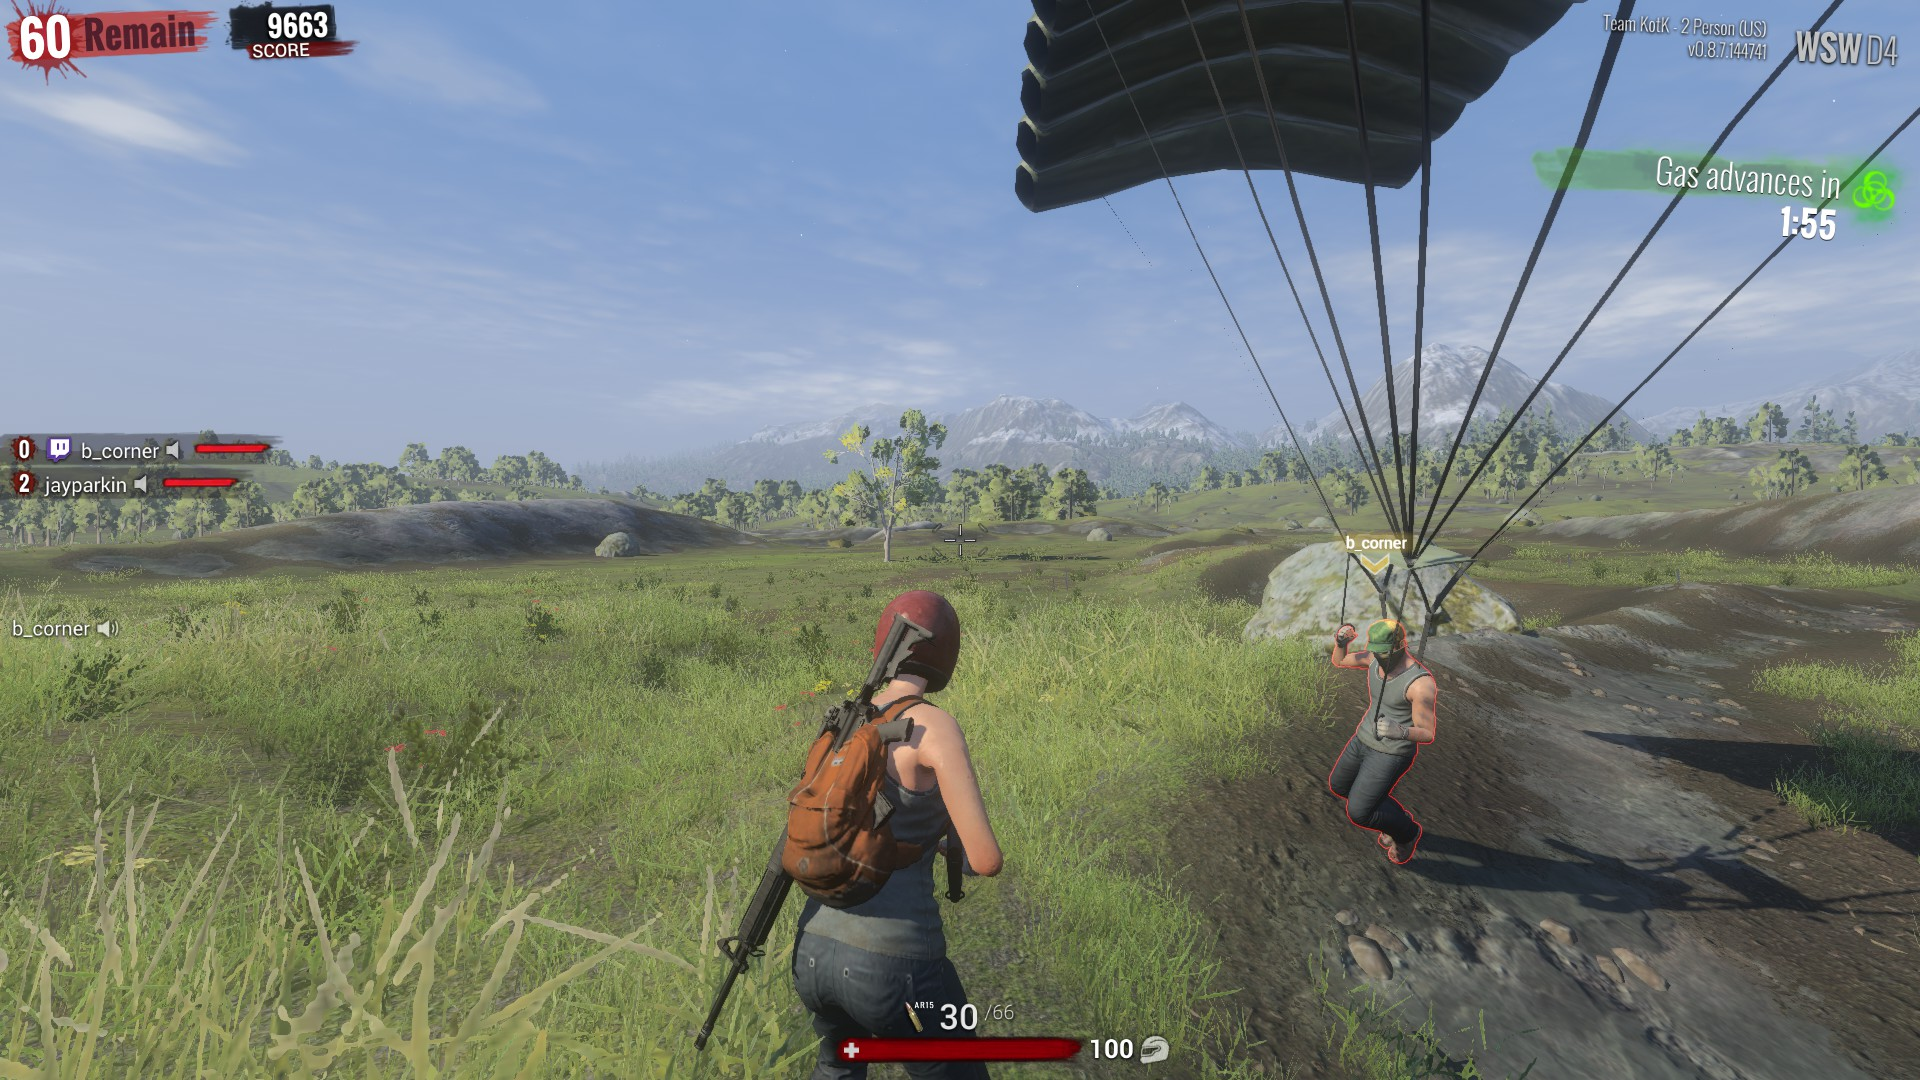 Pubg Parachute Wallpaper H1z1 King Of The Kill Review Extreme Wilderness